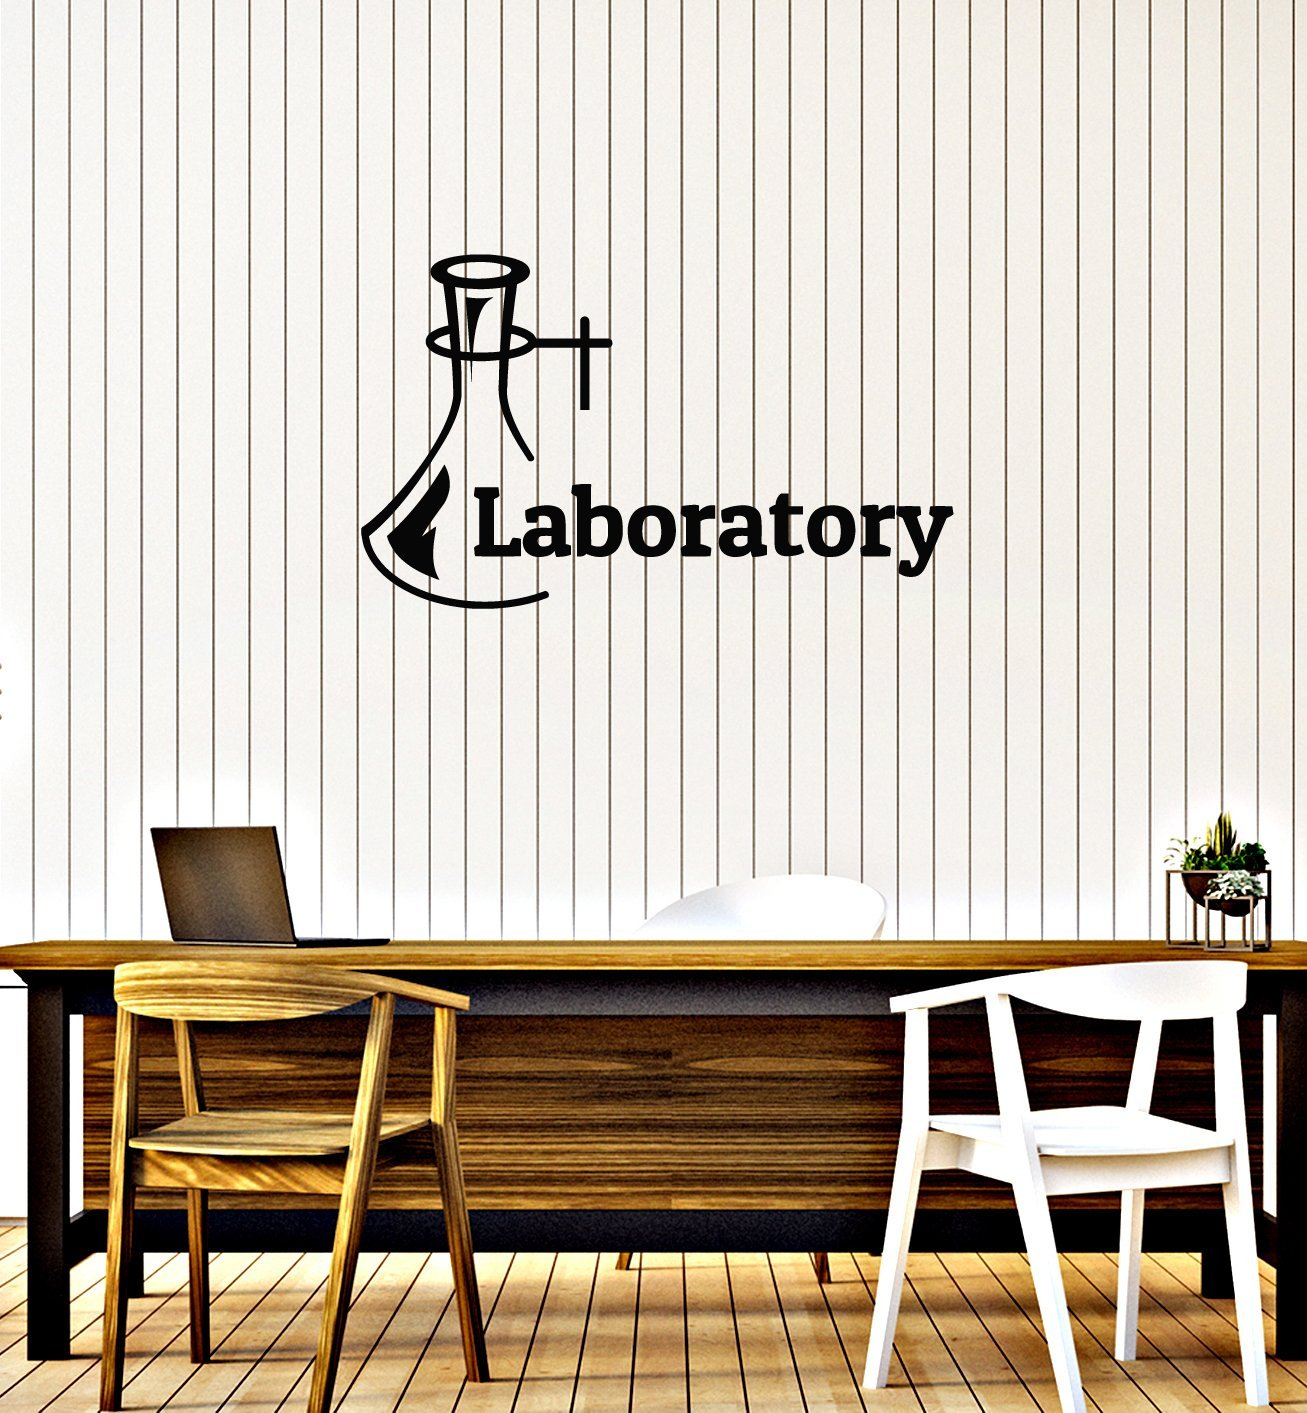 """LOVE SQUARE PANELING Wall Vinyl Decal Art Lettering Sticker Words Design 24/"""""""